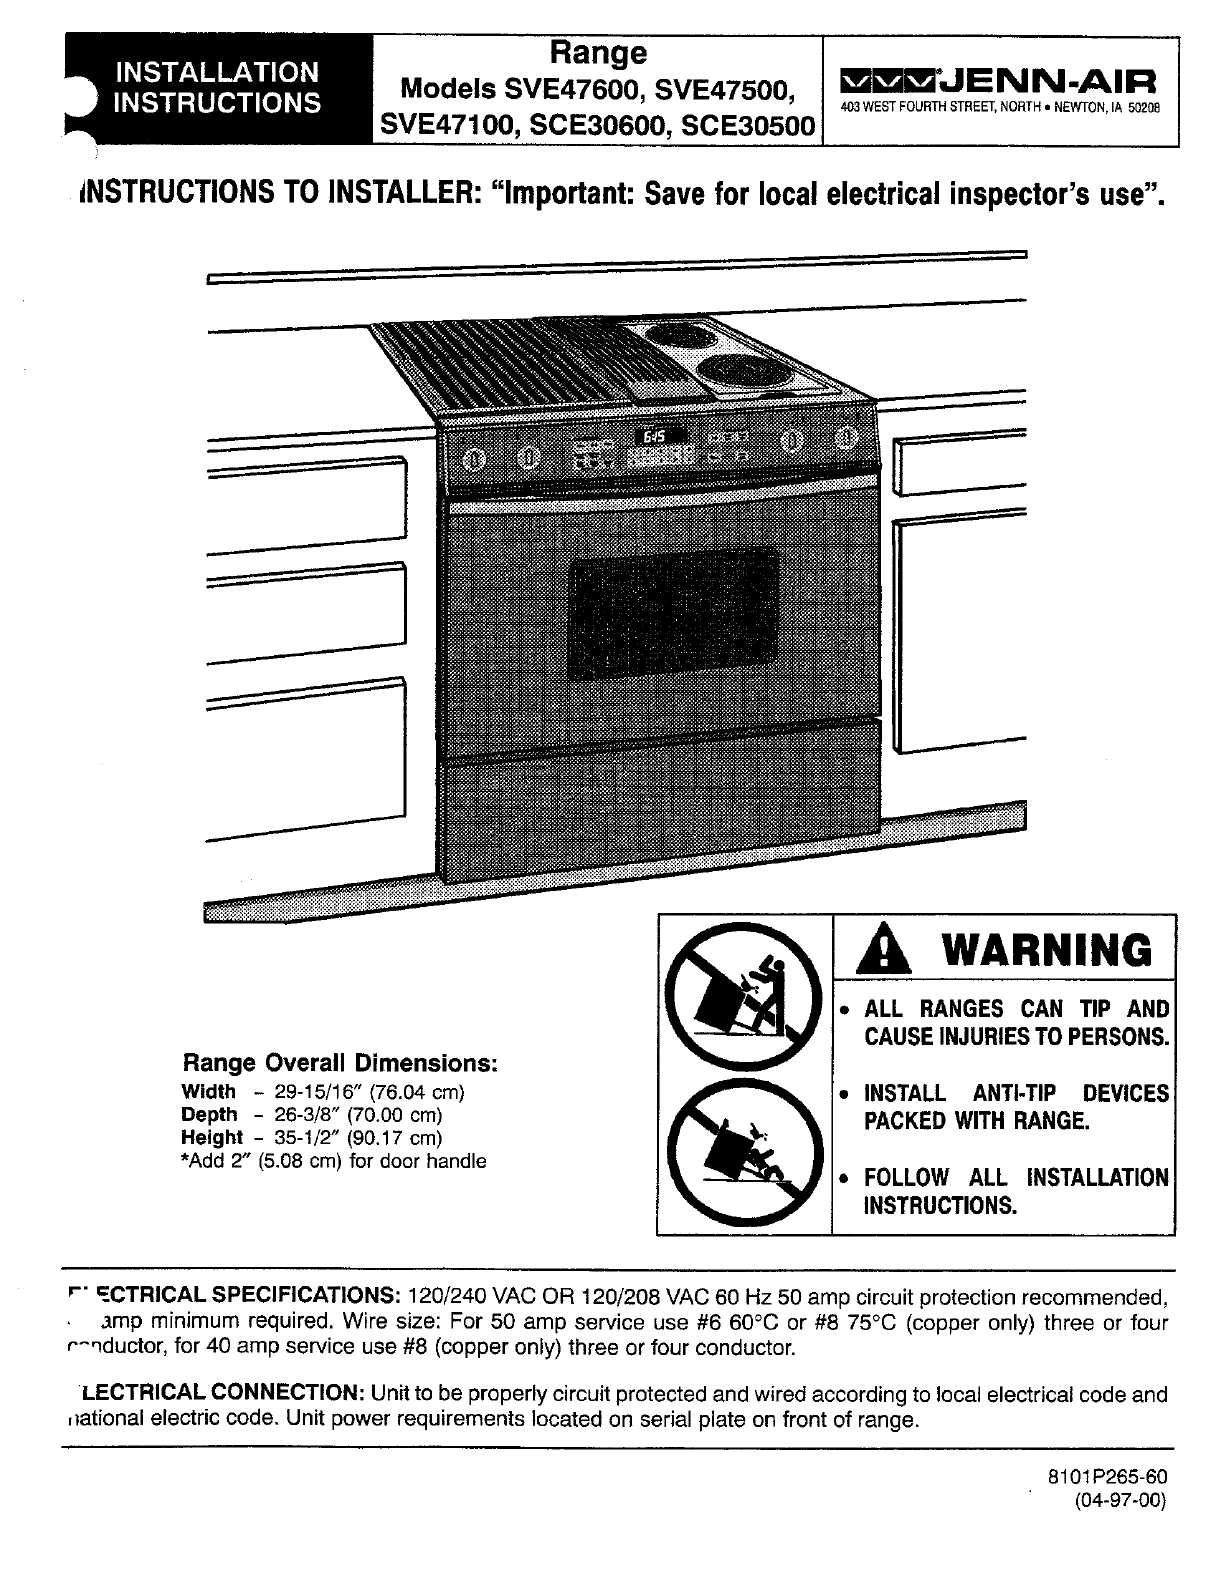 Oven Cleaning: Jenn Air Convection Oven Cleaning Instructions on jenn air warranty, jenn air solenoid, jenn air coil, jenn air schematic, jenn air clock, jenn air fan diagram, jenn air switch, jenn air thermostat, jenn air installation, gas fireplace schematic and diagram, jenn air cover, jenn air repair, jenn-air parts diagram, fireplace parts diagram, jenn air control panel, jenn air accessories, jenn air motor diagram, jenn air exhaust, jenn air system,